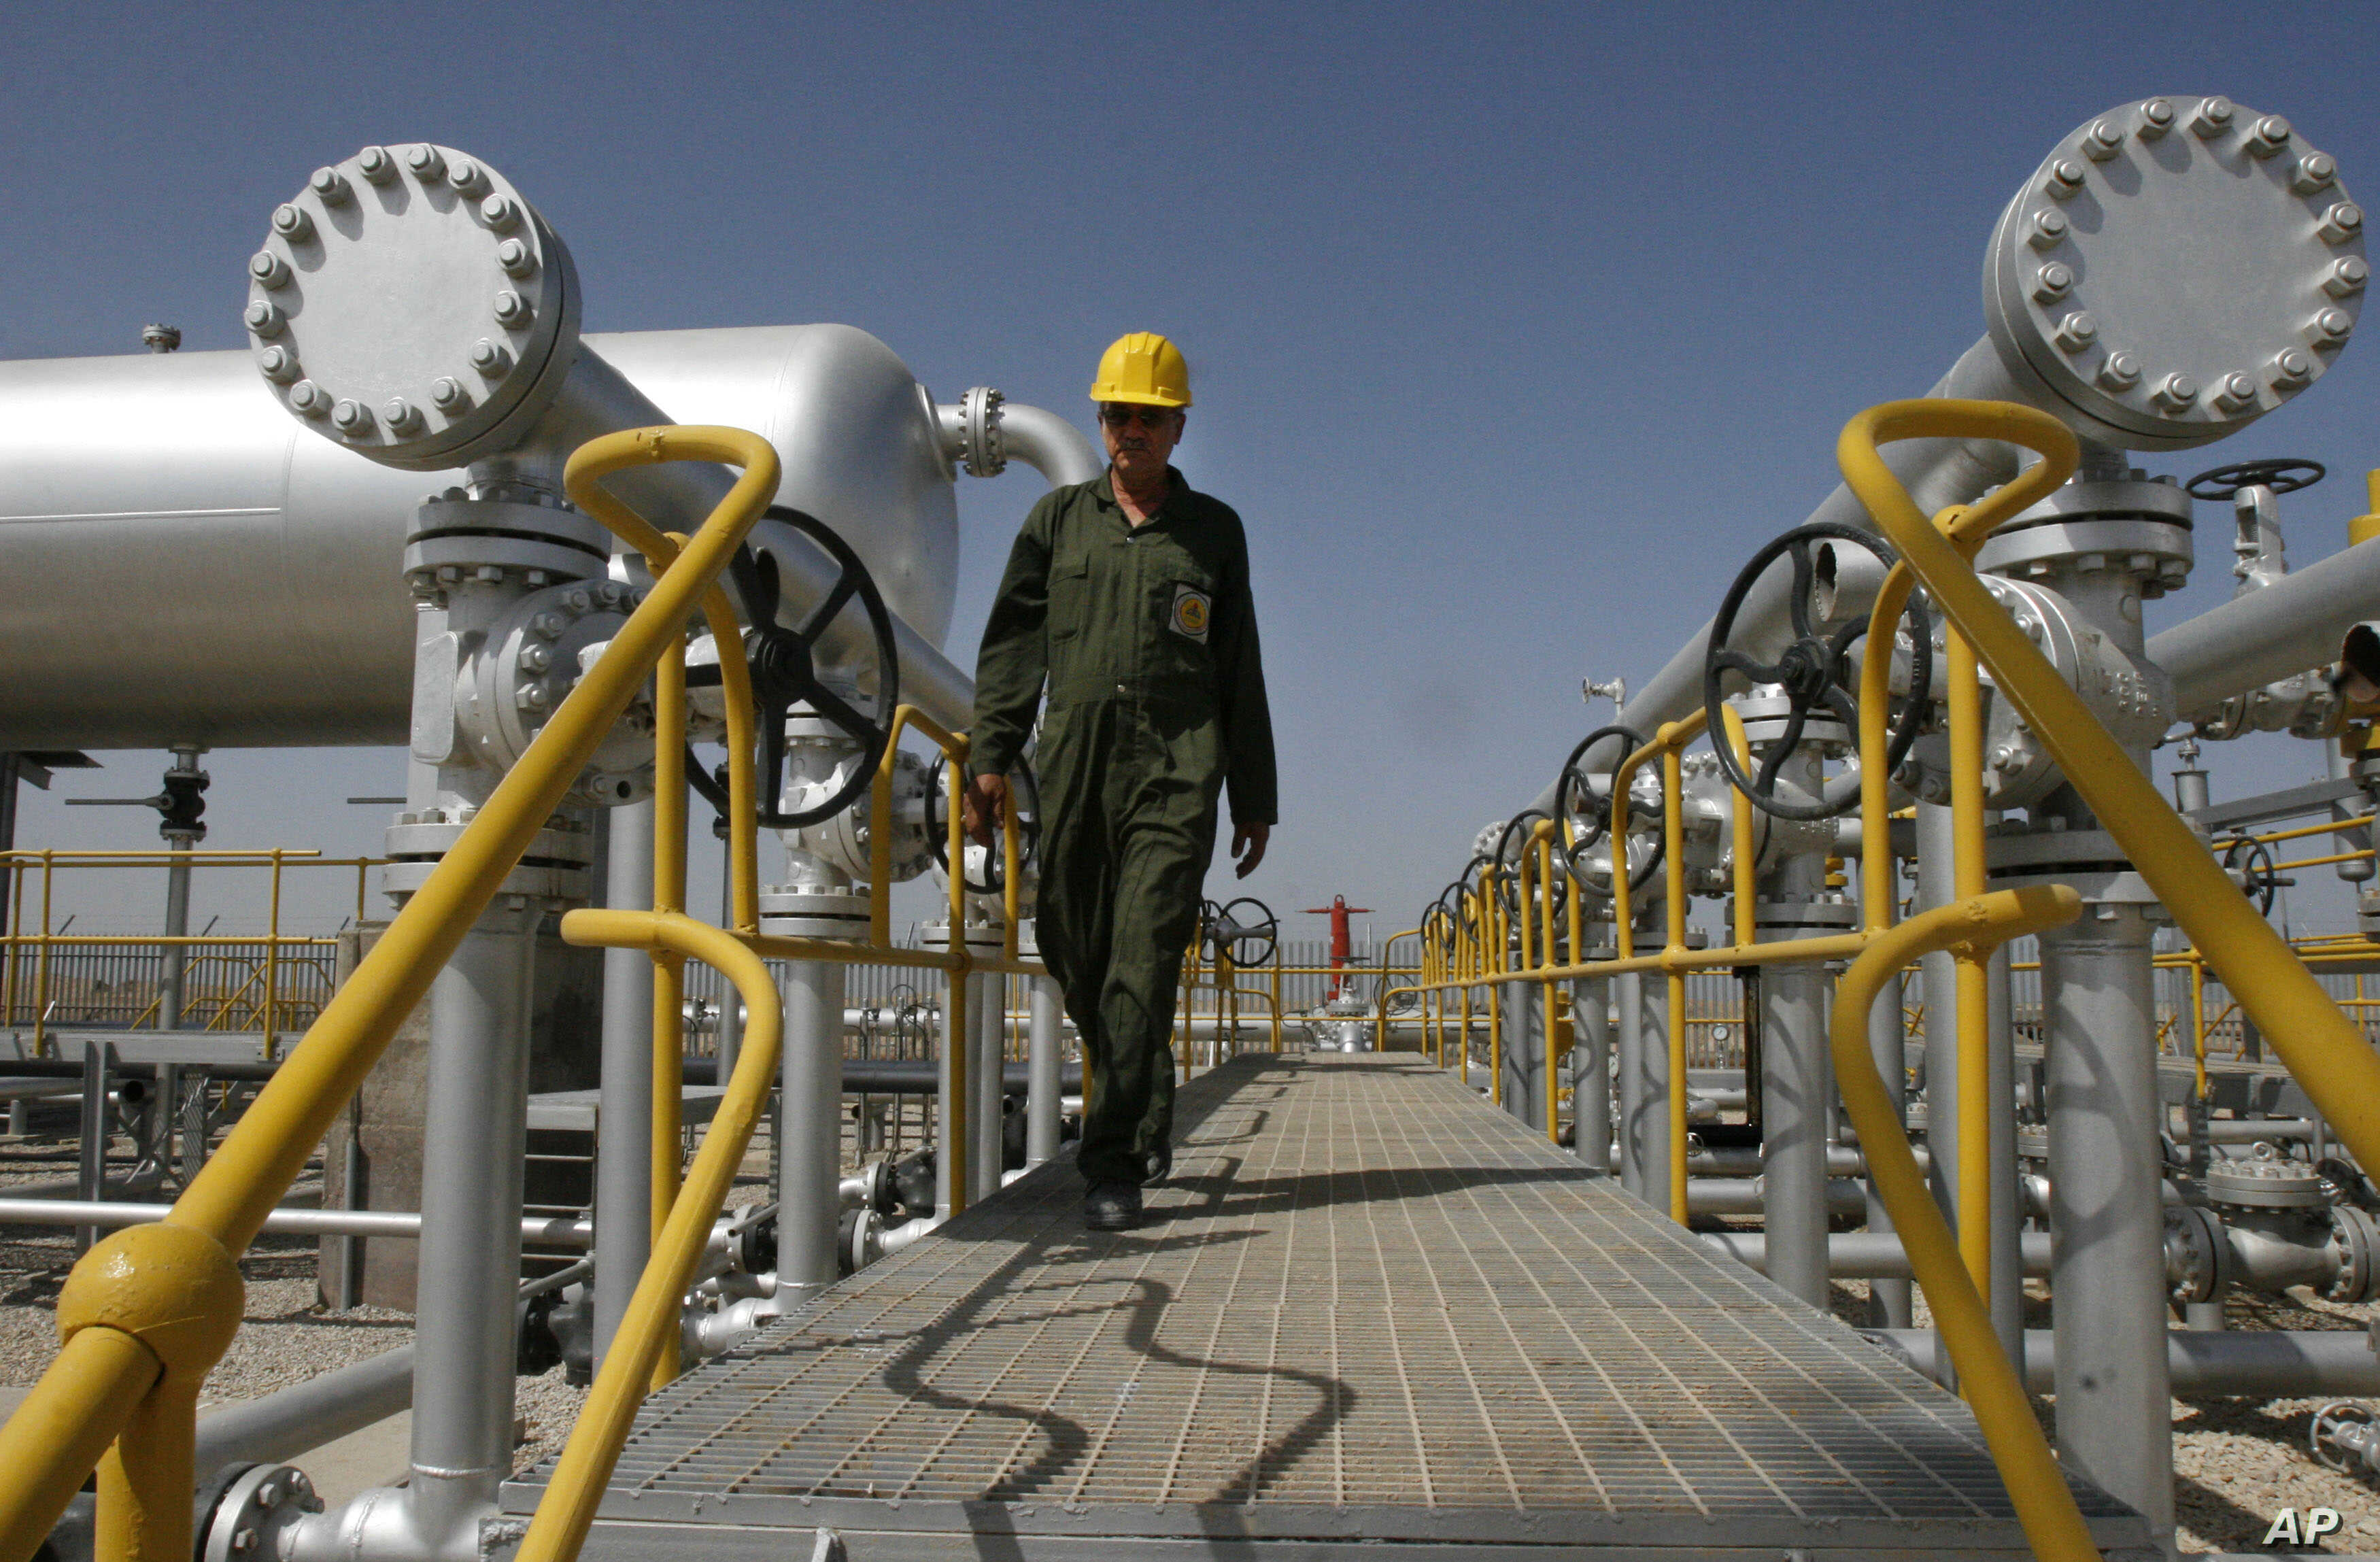 Iran, China Oil Firms Seek to Get Projects Moving | Voice of